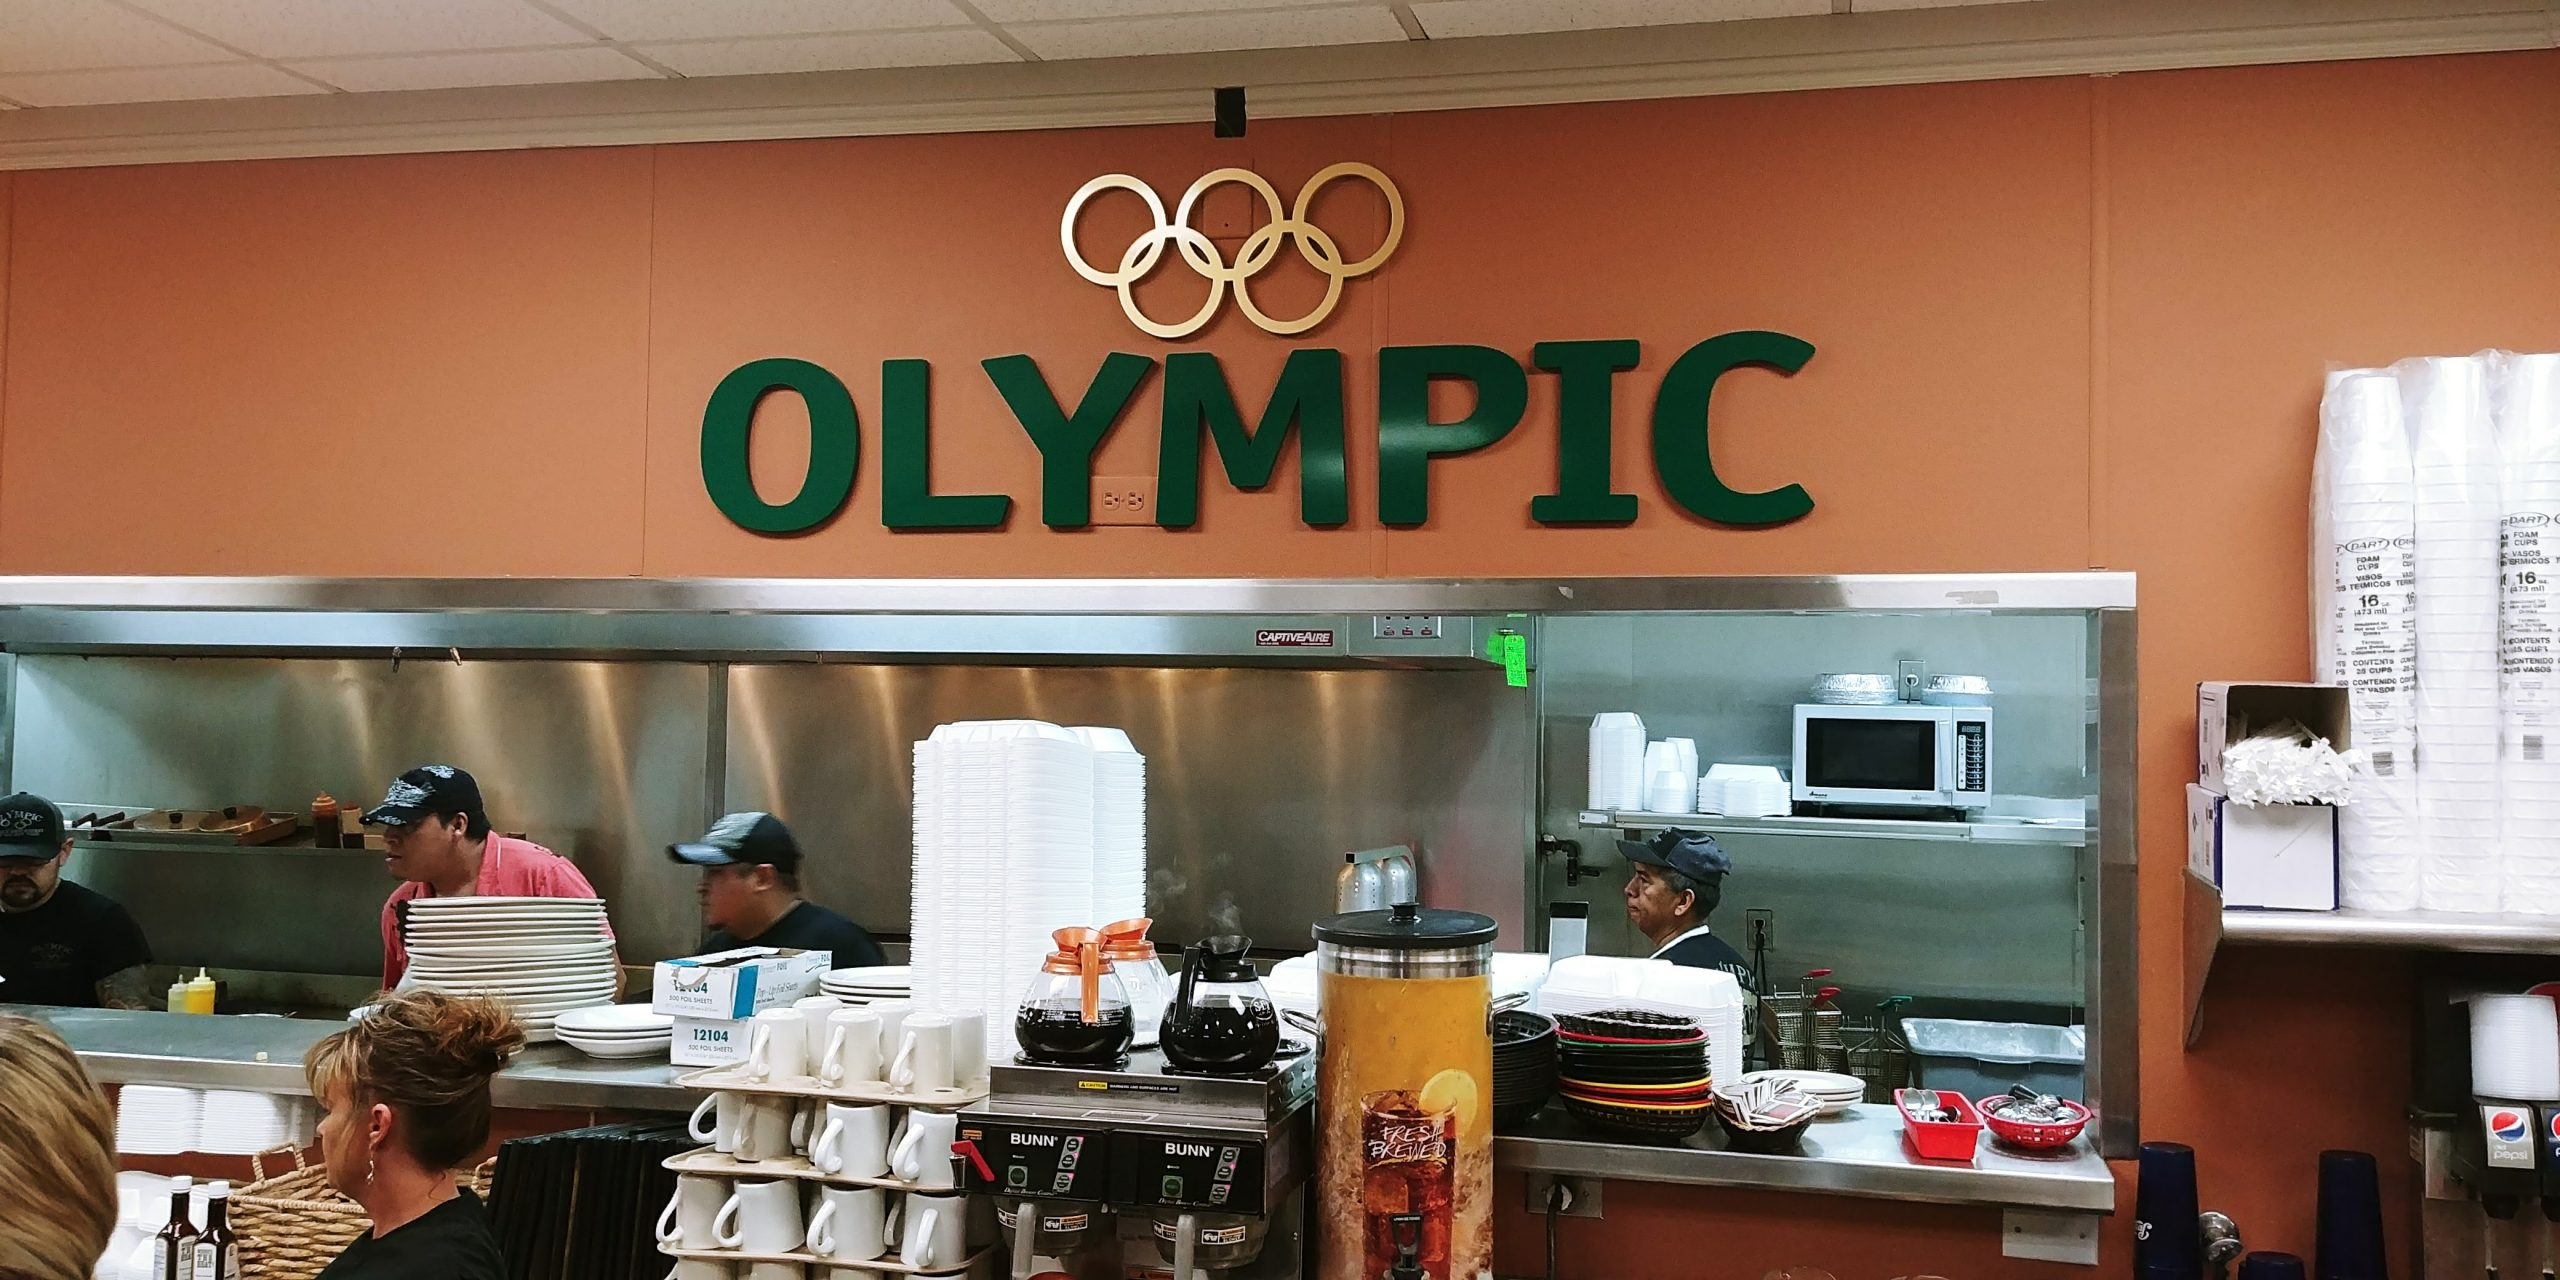 Olympic_restaurant_wall_lettering_display